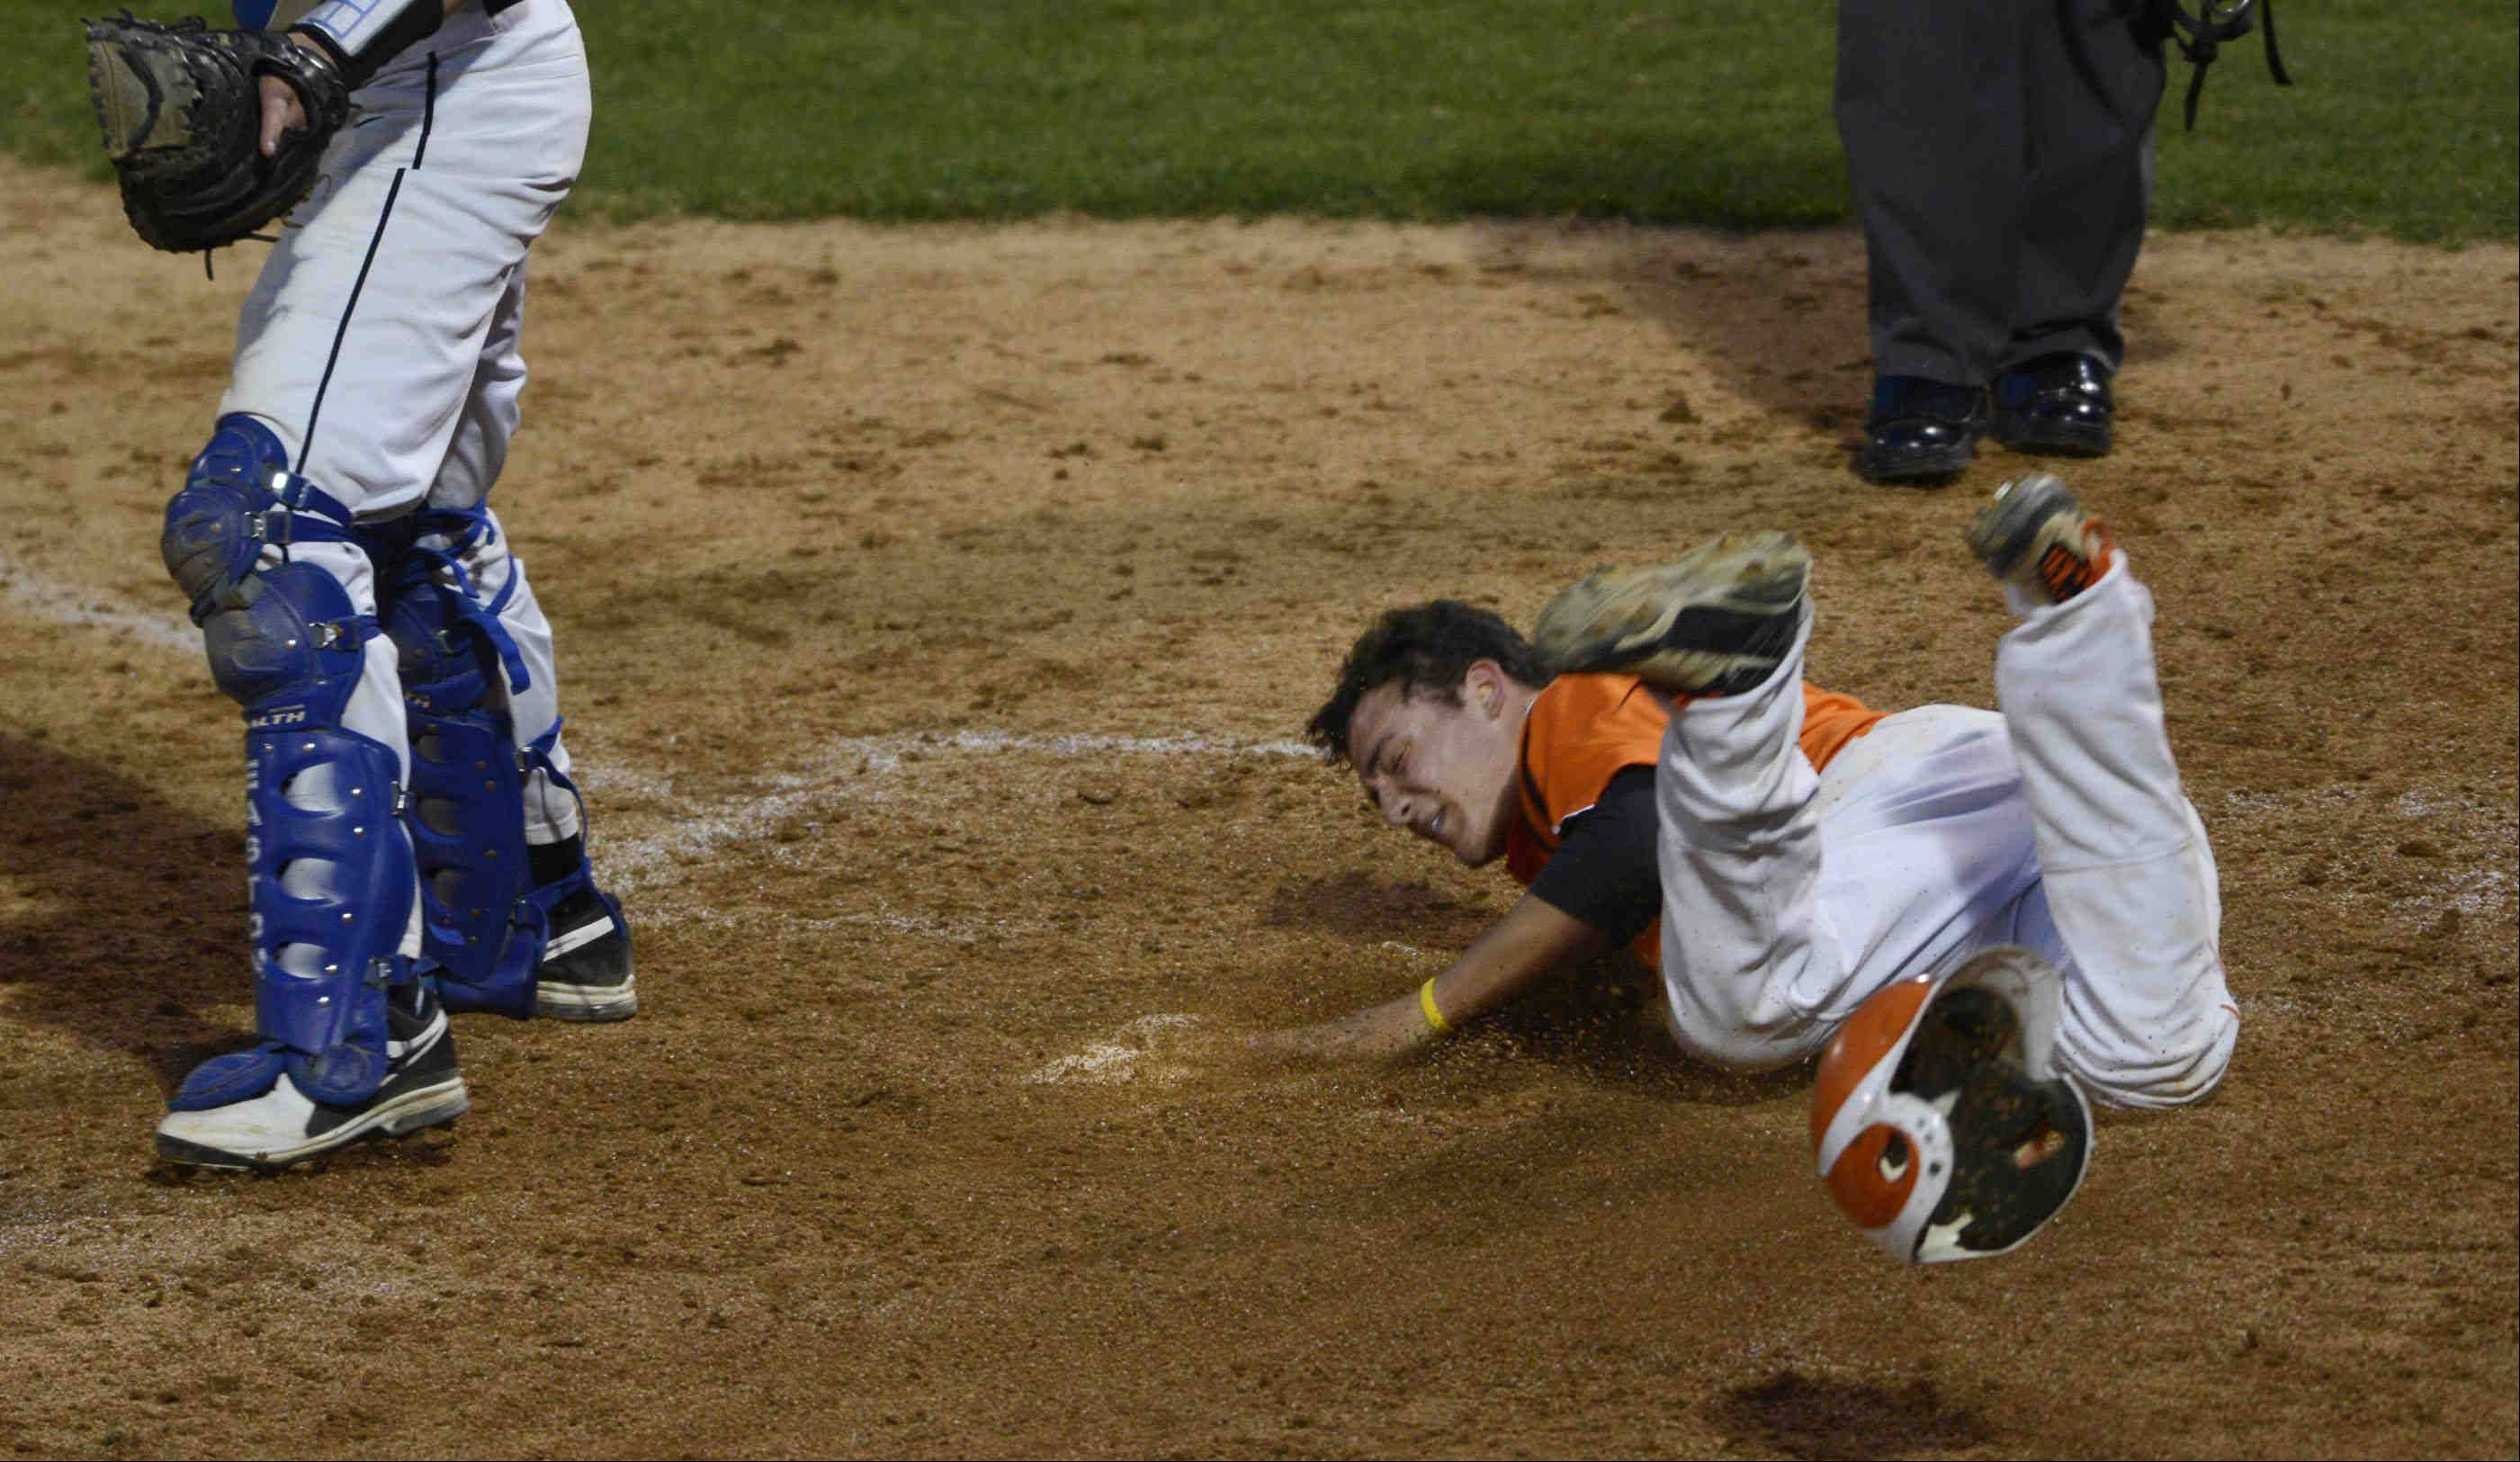 St. Charles East's Anthony Sciarrino slides over home plate in the fourth inning against St. Charles North Monday at Fifth Third Bank Park in Geneva. The score was taken off the board after an appeal by North coaches.